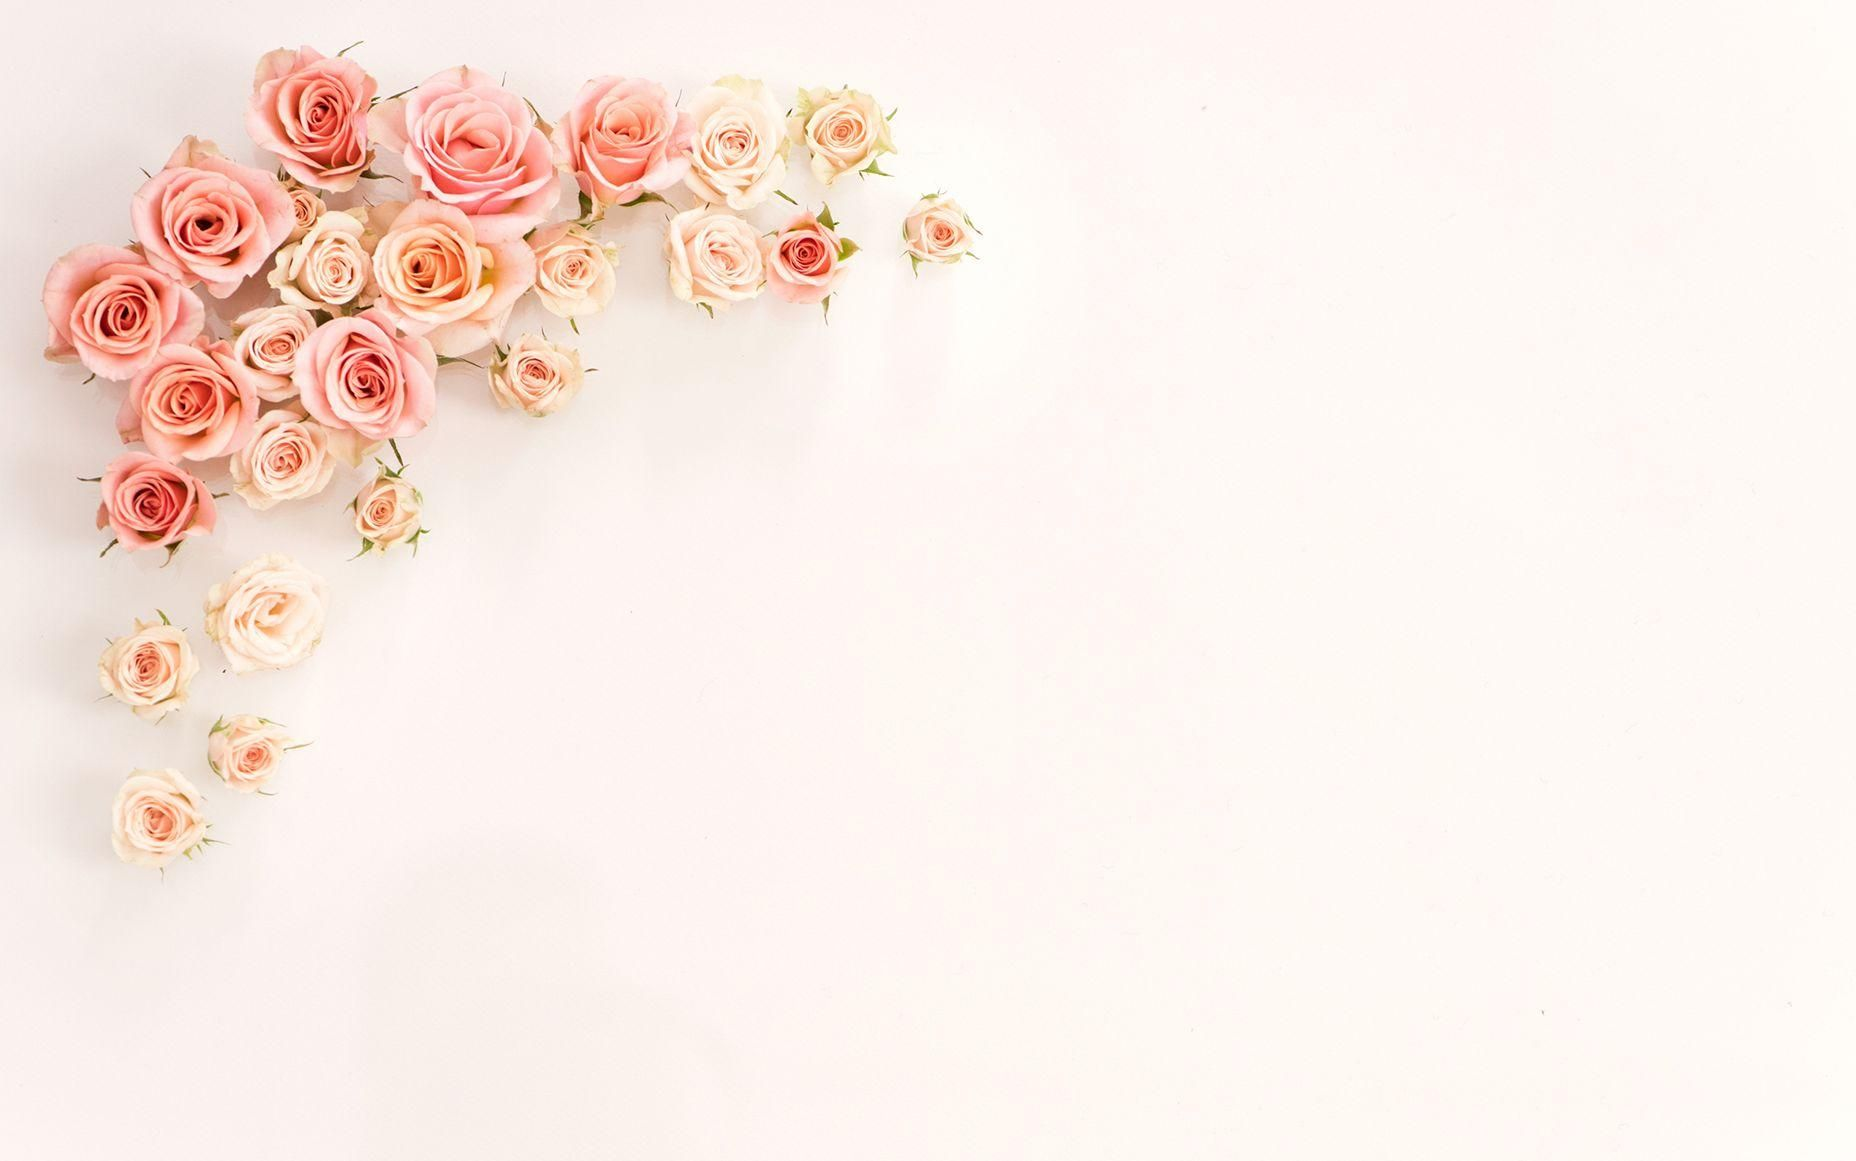 Download hd wallpapers for free on unsplash. Rose Gold Aesthetic Wallpapers - Top Free Rose Gold ...